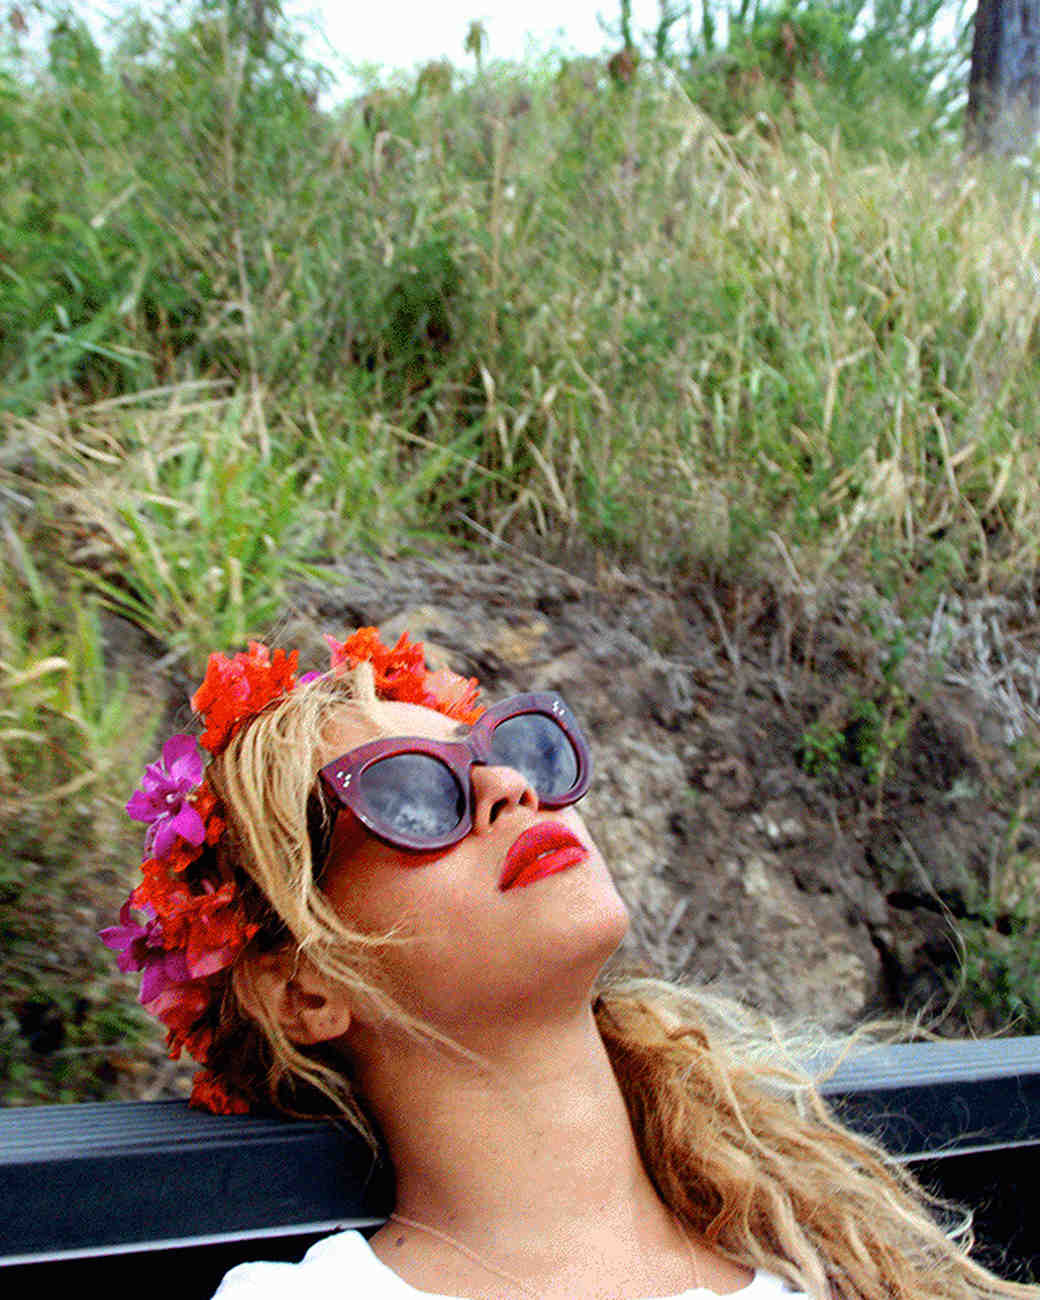 beyonce-flower-crown-red-website-0616.jpg